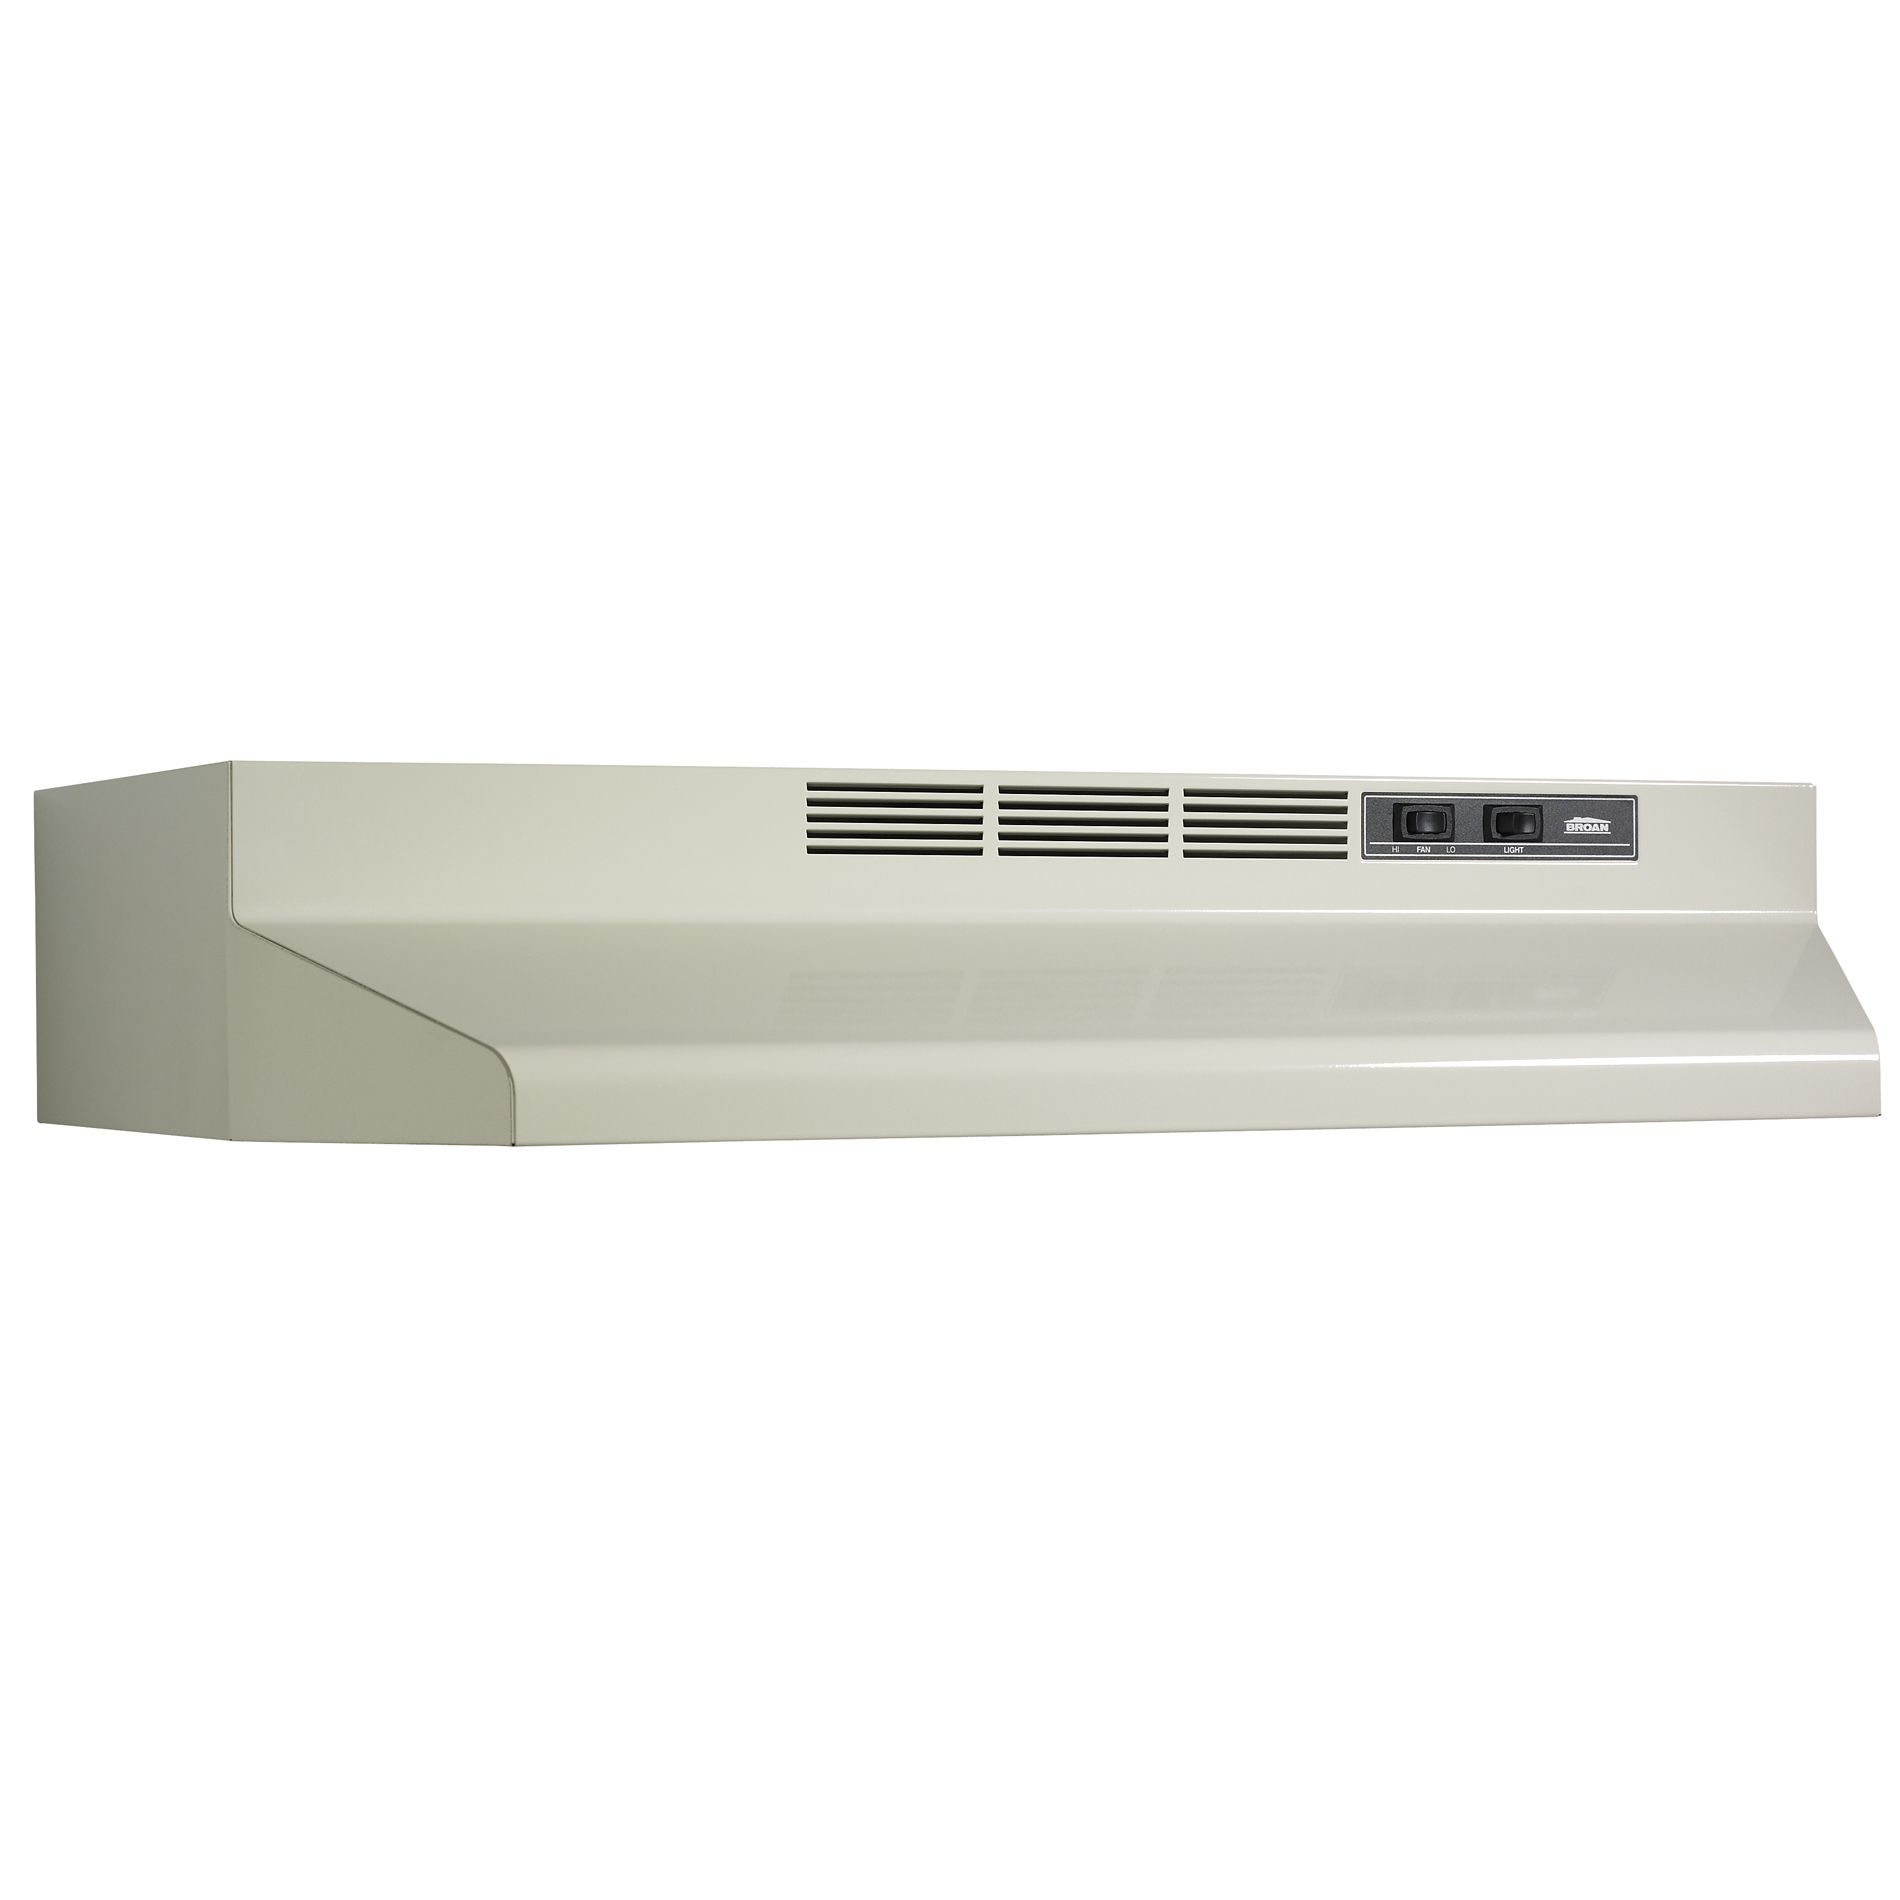 01413611 Broan-Nutone 36N Ductless White Economy